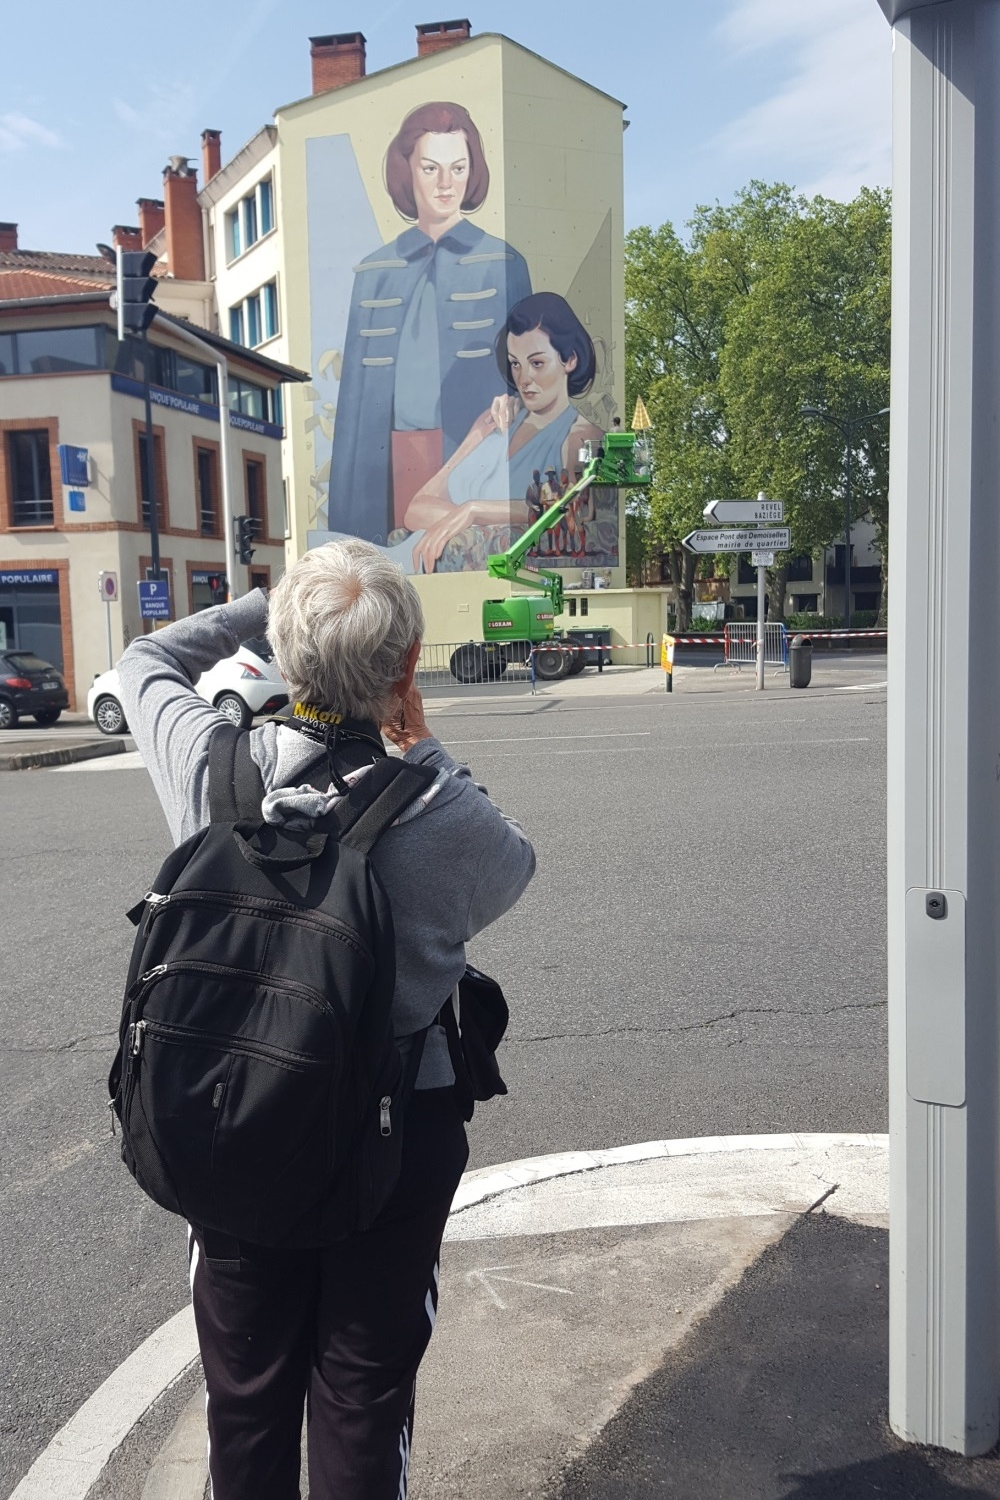 Marther Cooper photographing Aryz' Mural, Rose Beton 2016 Toulouse